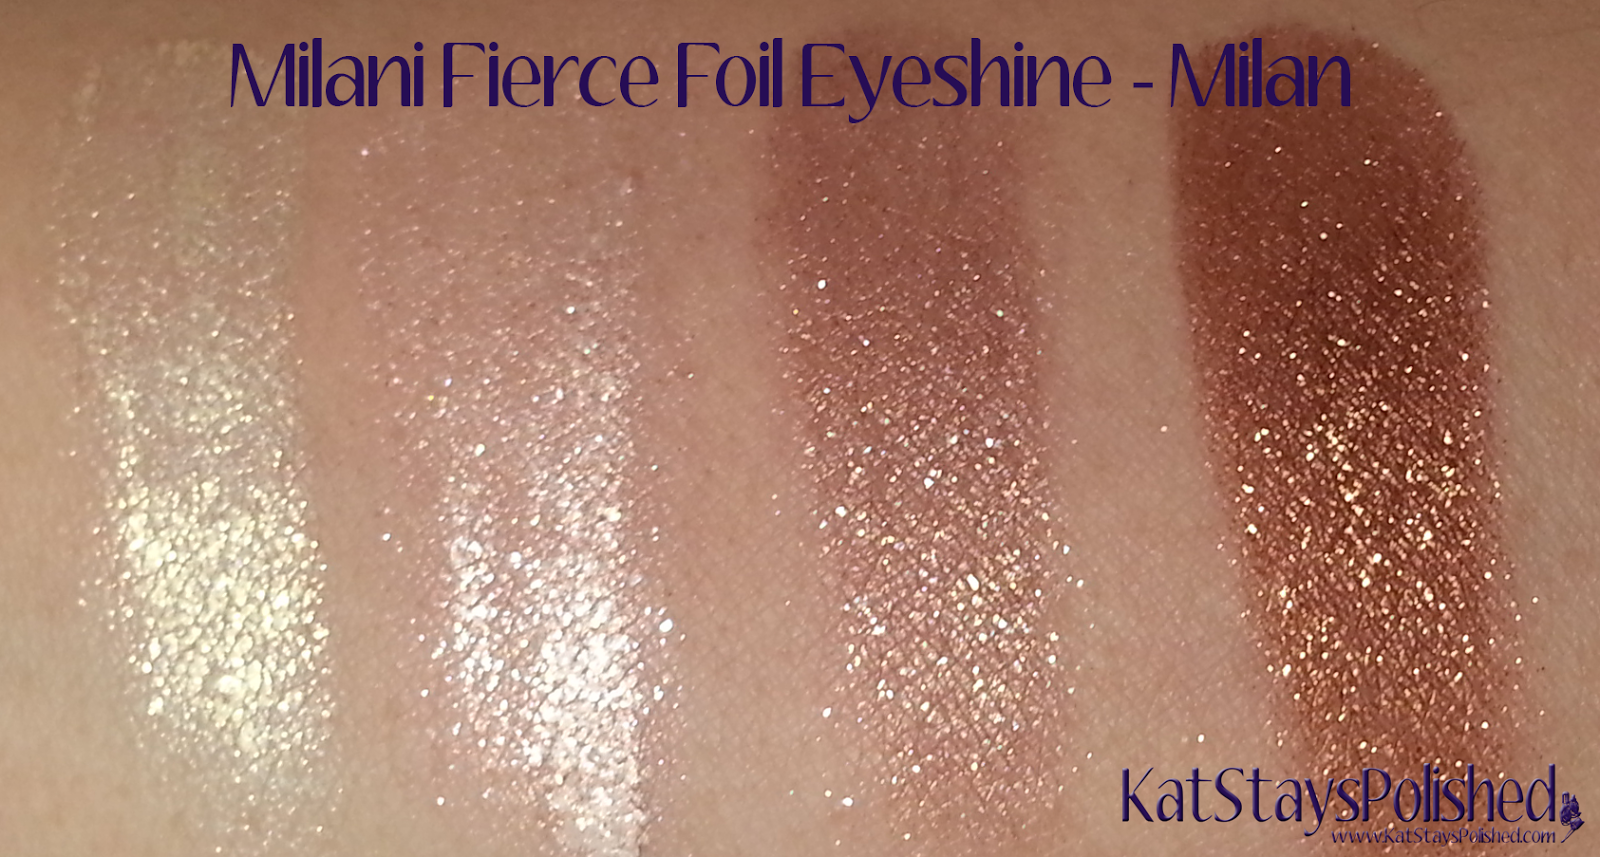 Milani Fierce Foil Eyeshine - Milan | Kat Stays Polished